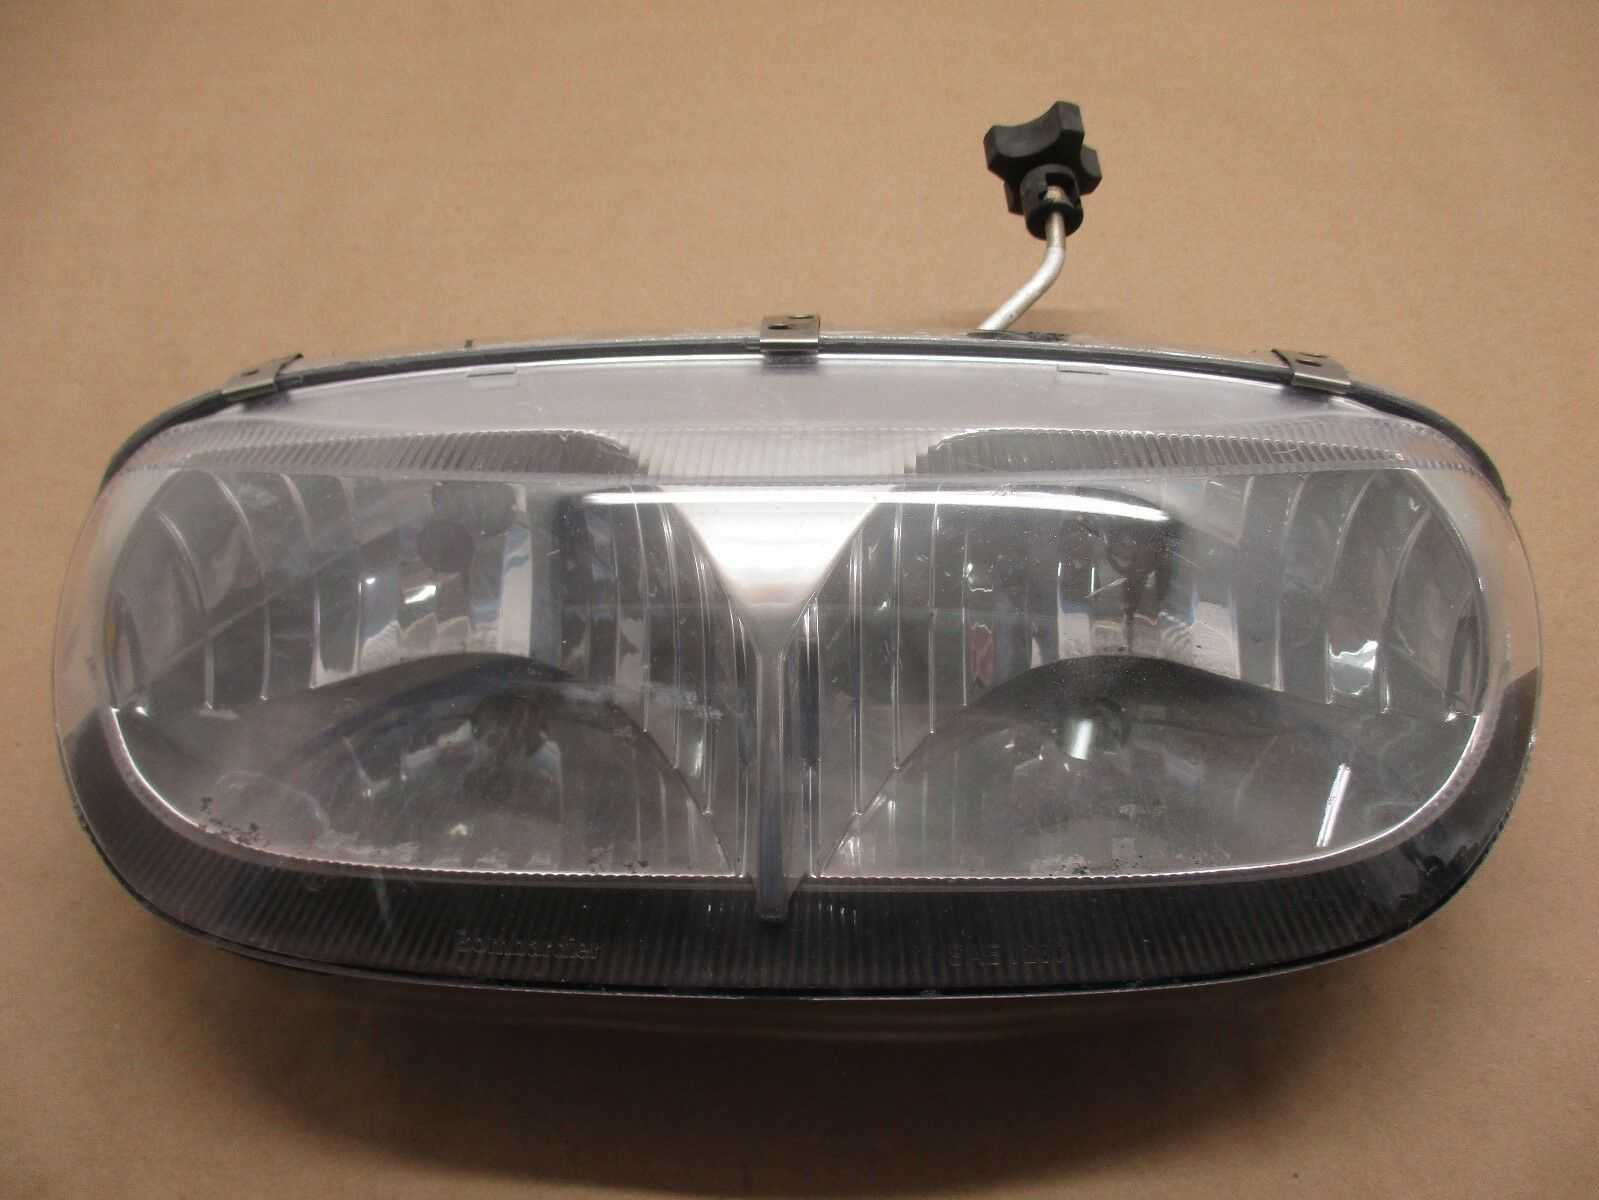 Ski-Doo Summit 800 2007 headlight (0635)